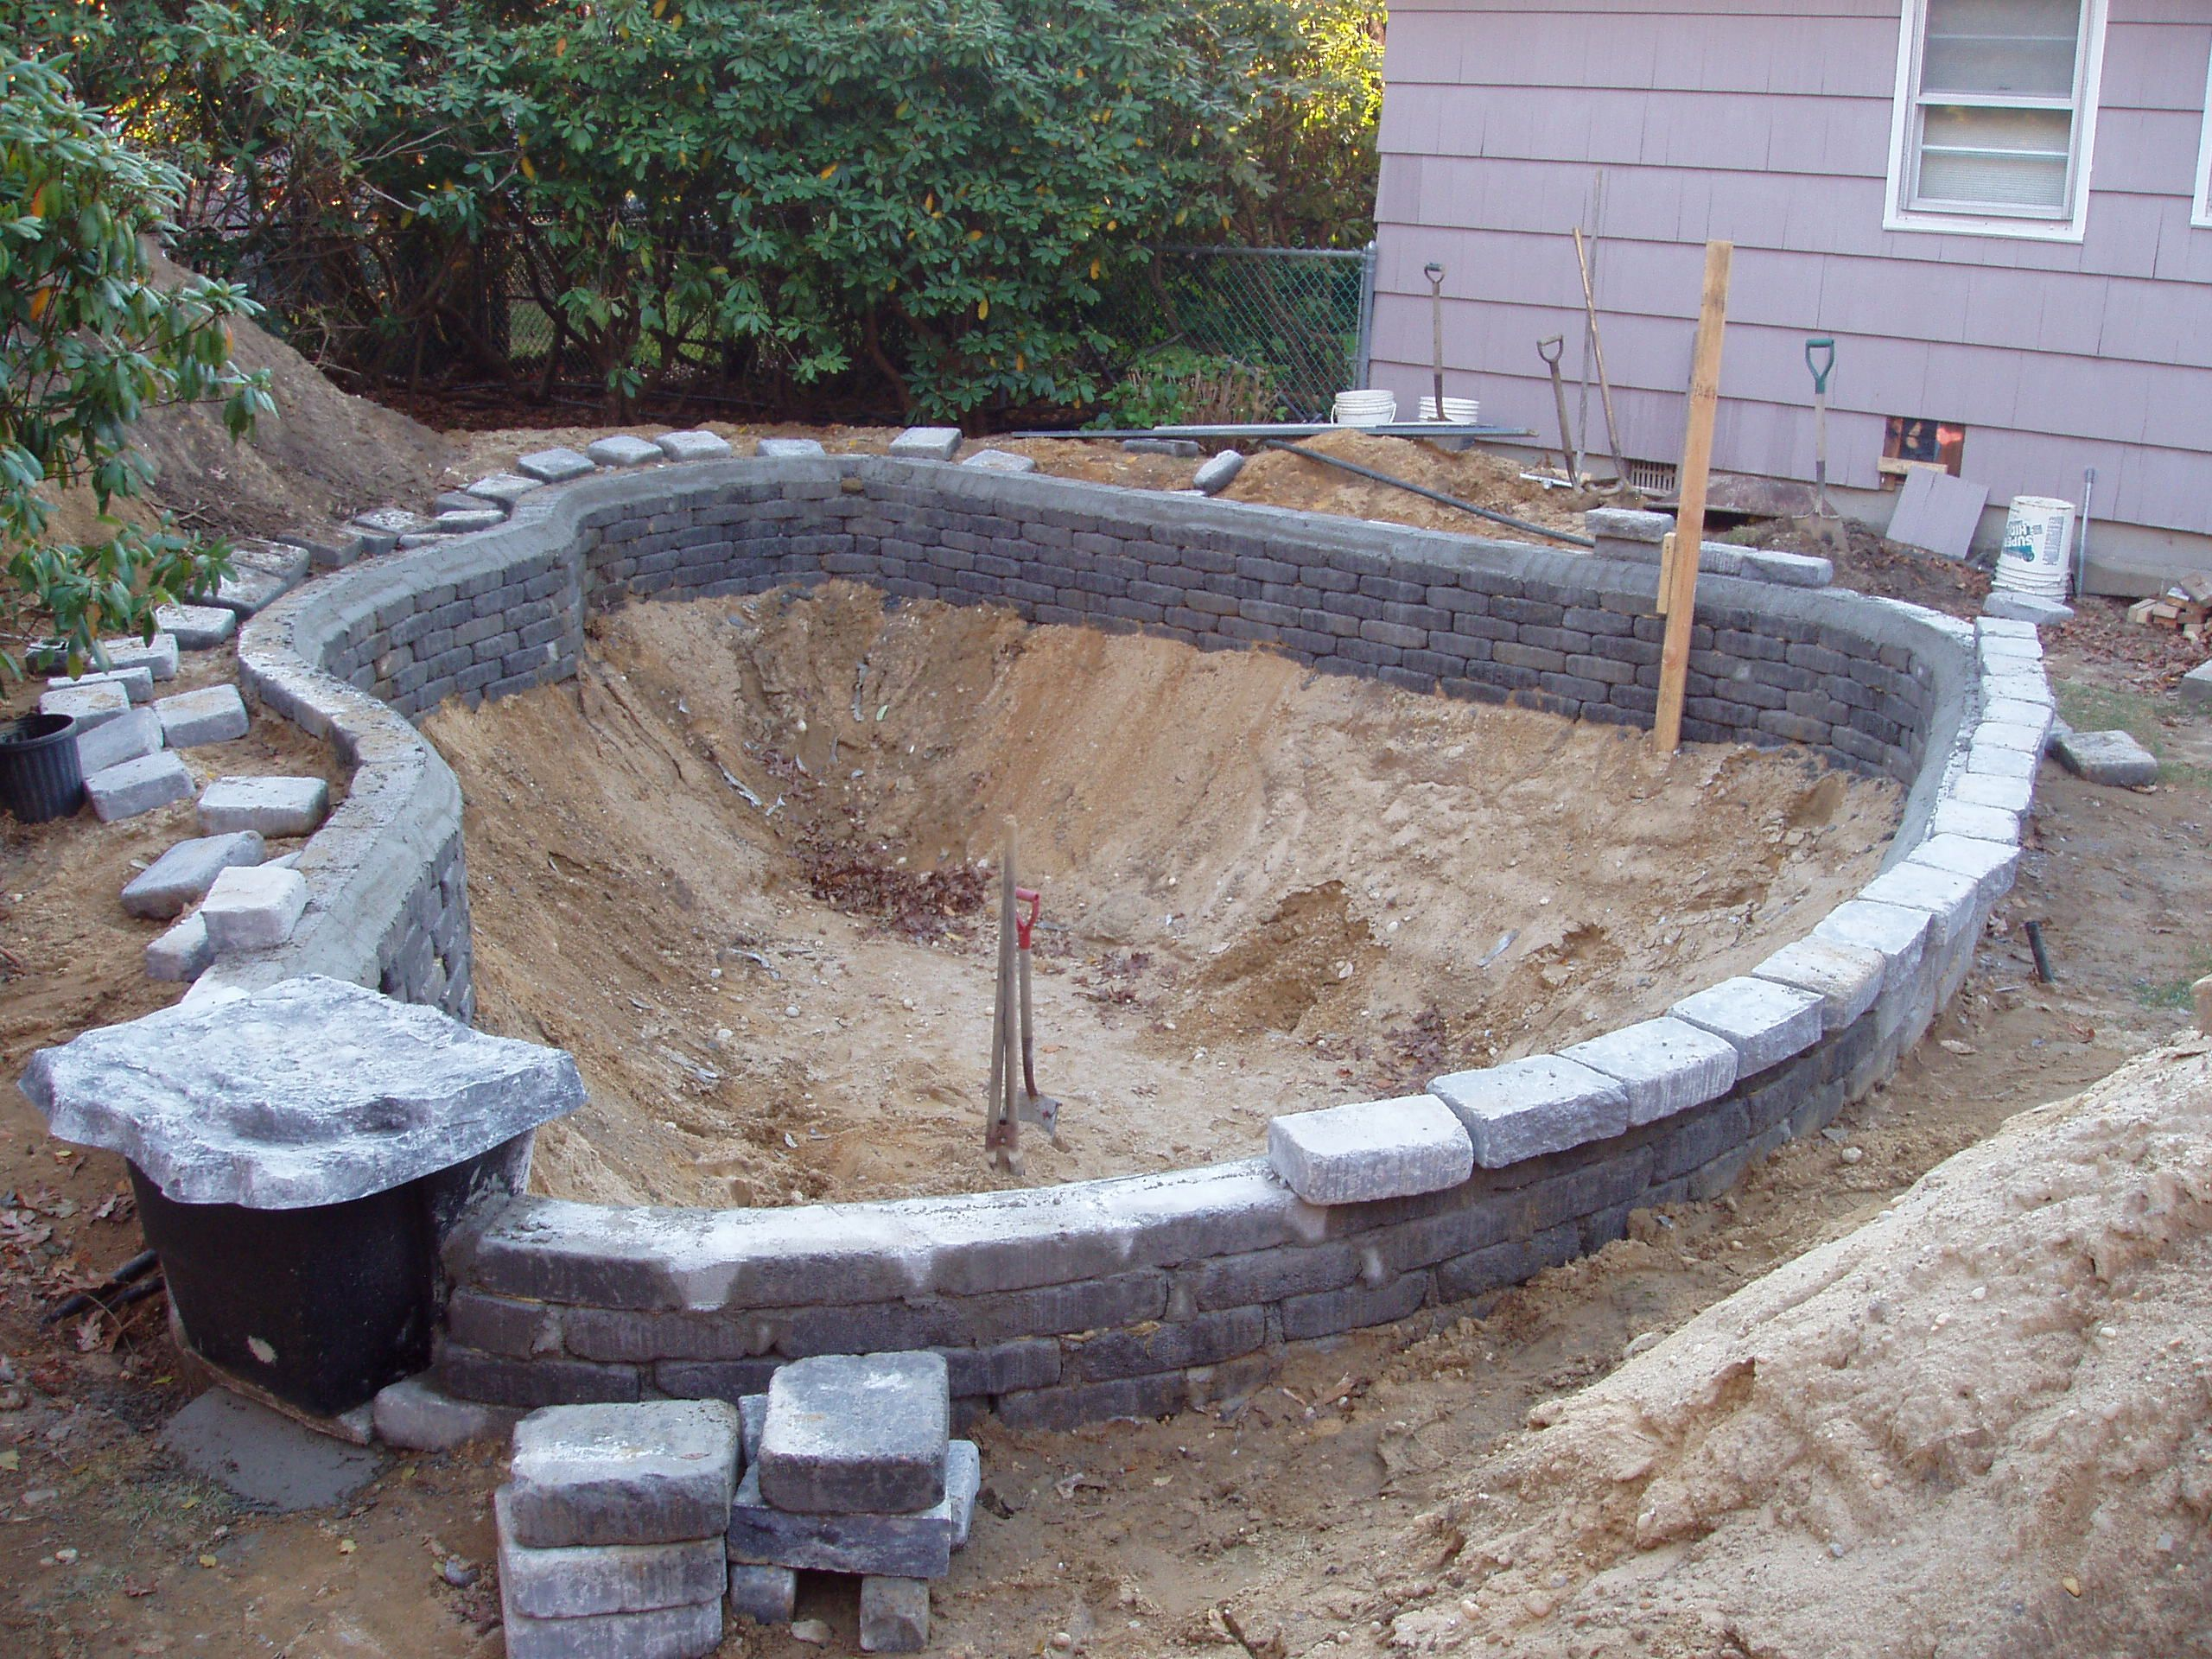 Pond design and construction google search aquaponics for How to design a pond